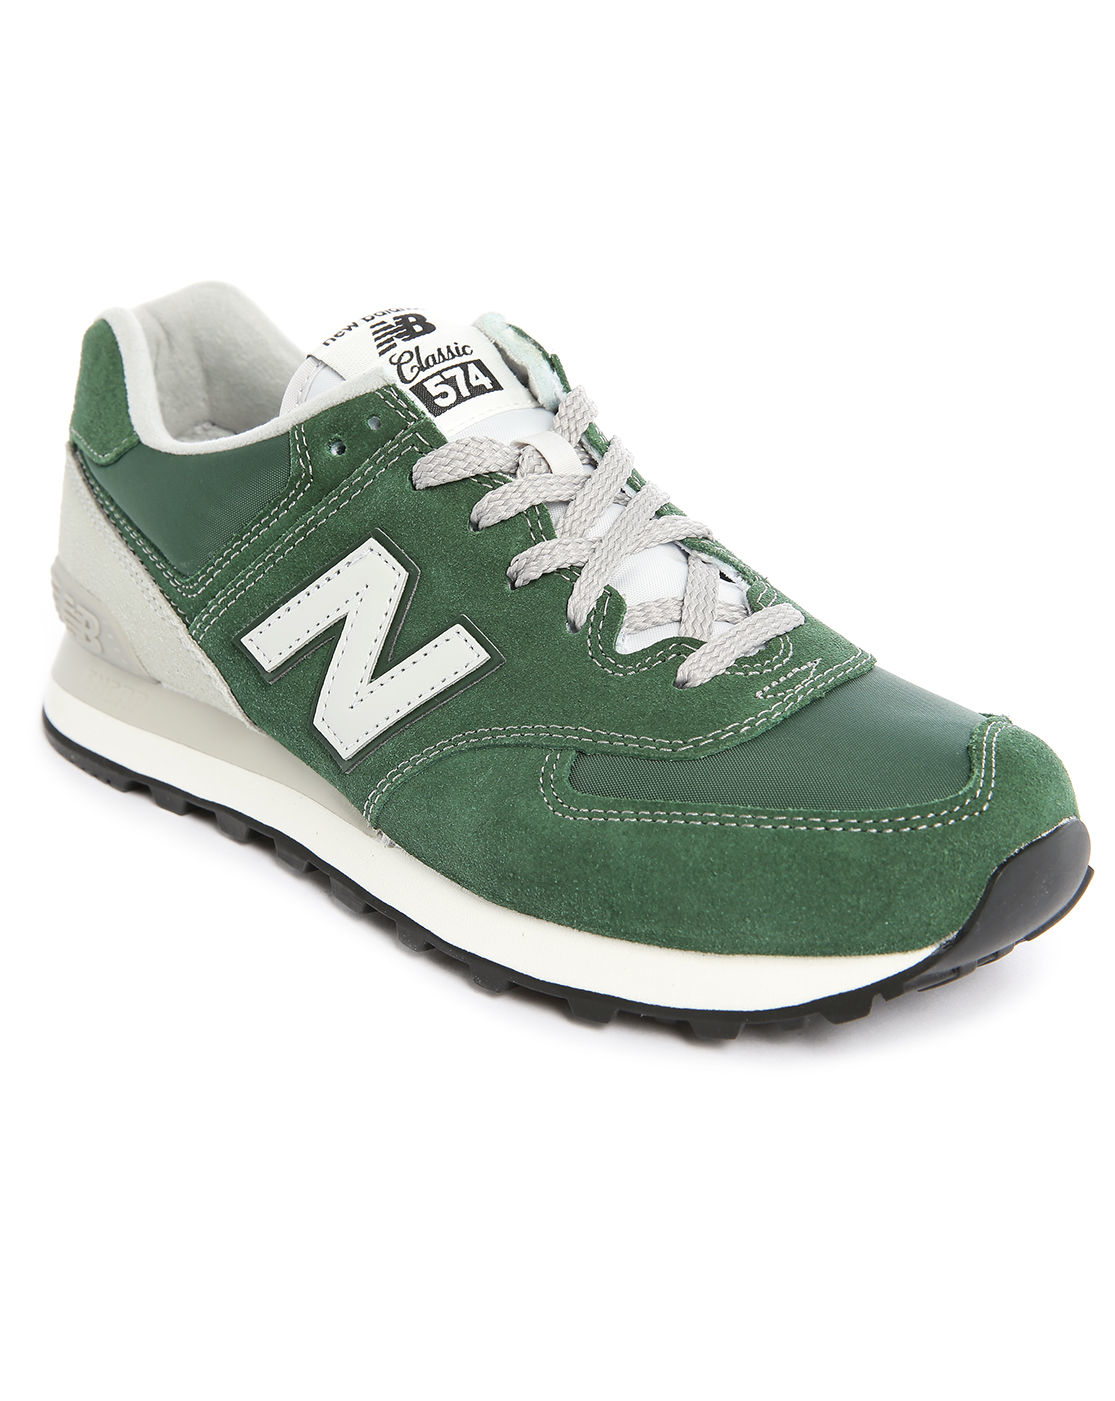 new balance 574 green suede skirt